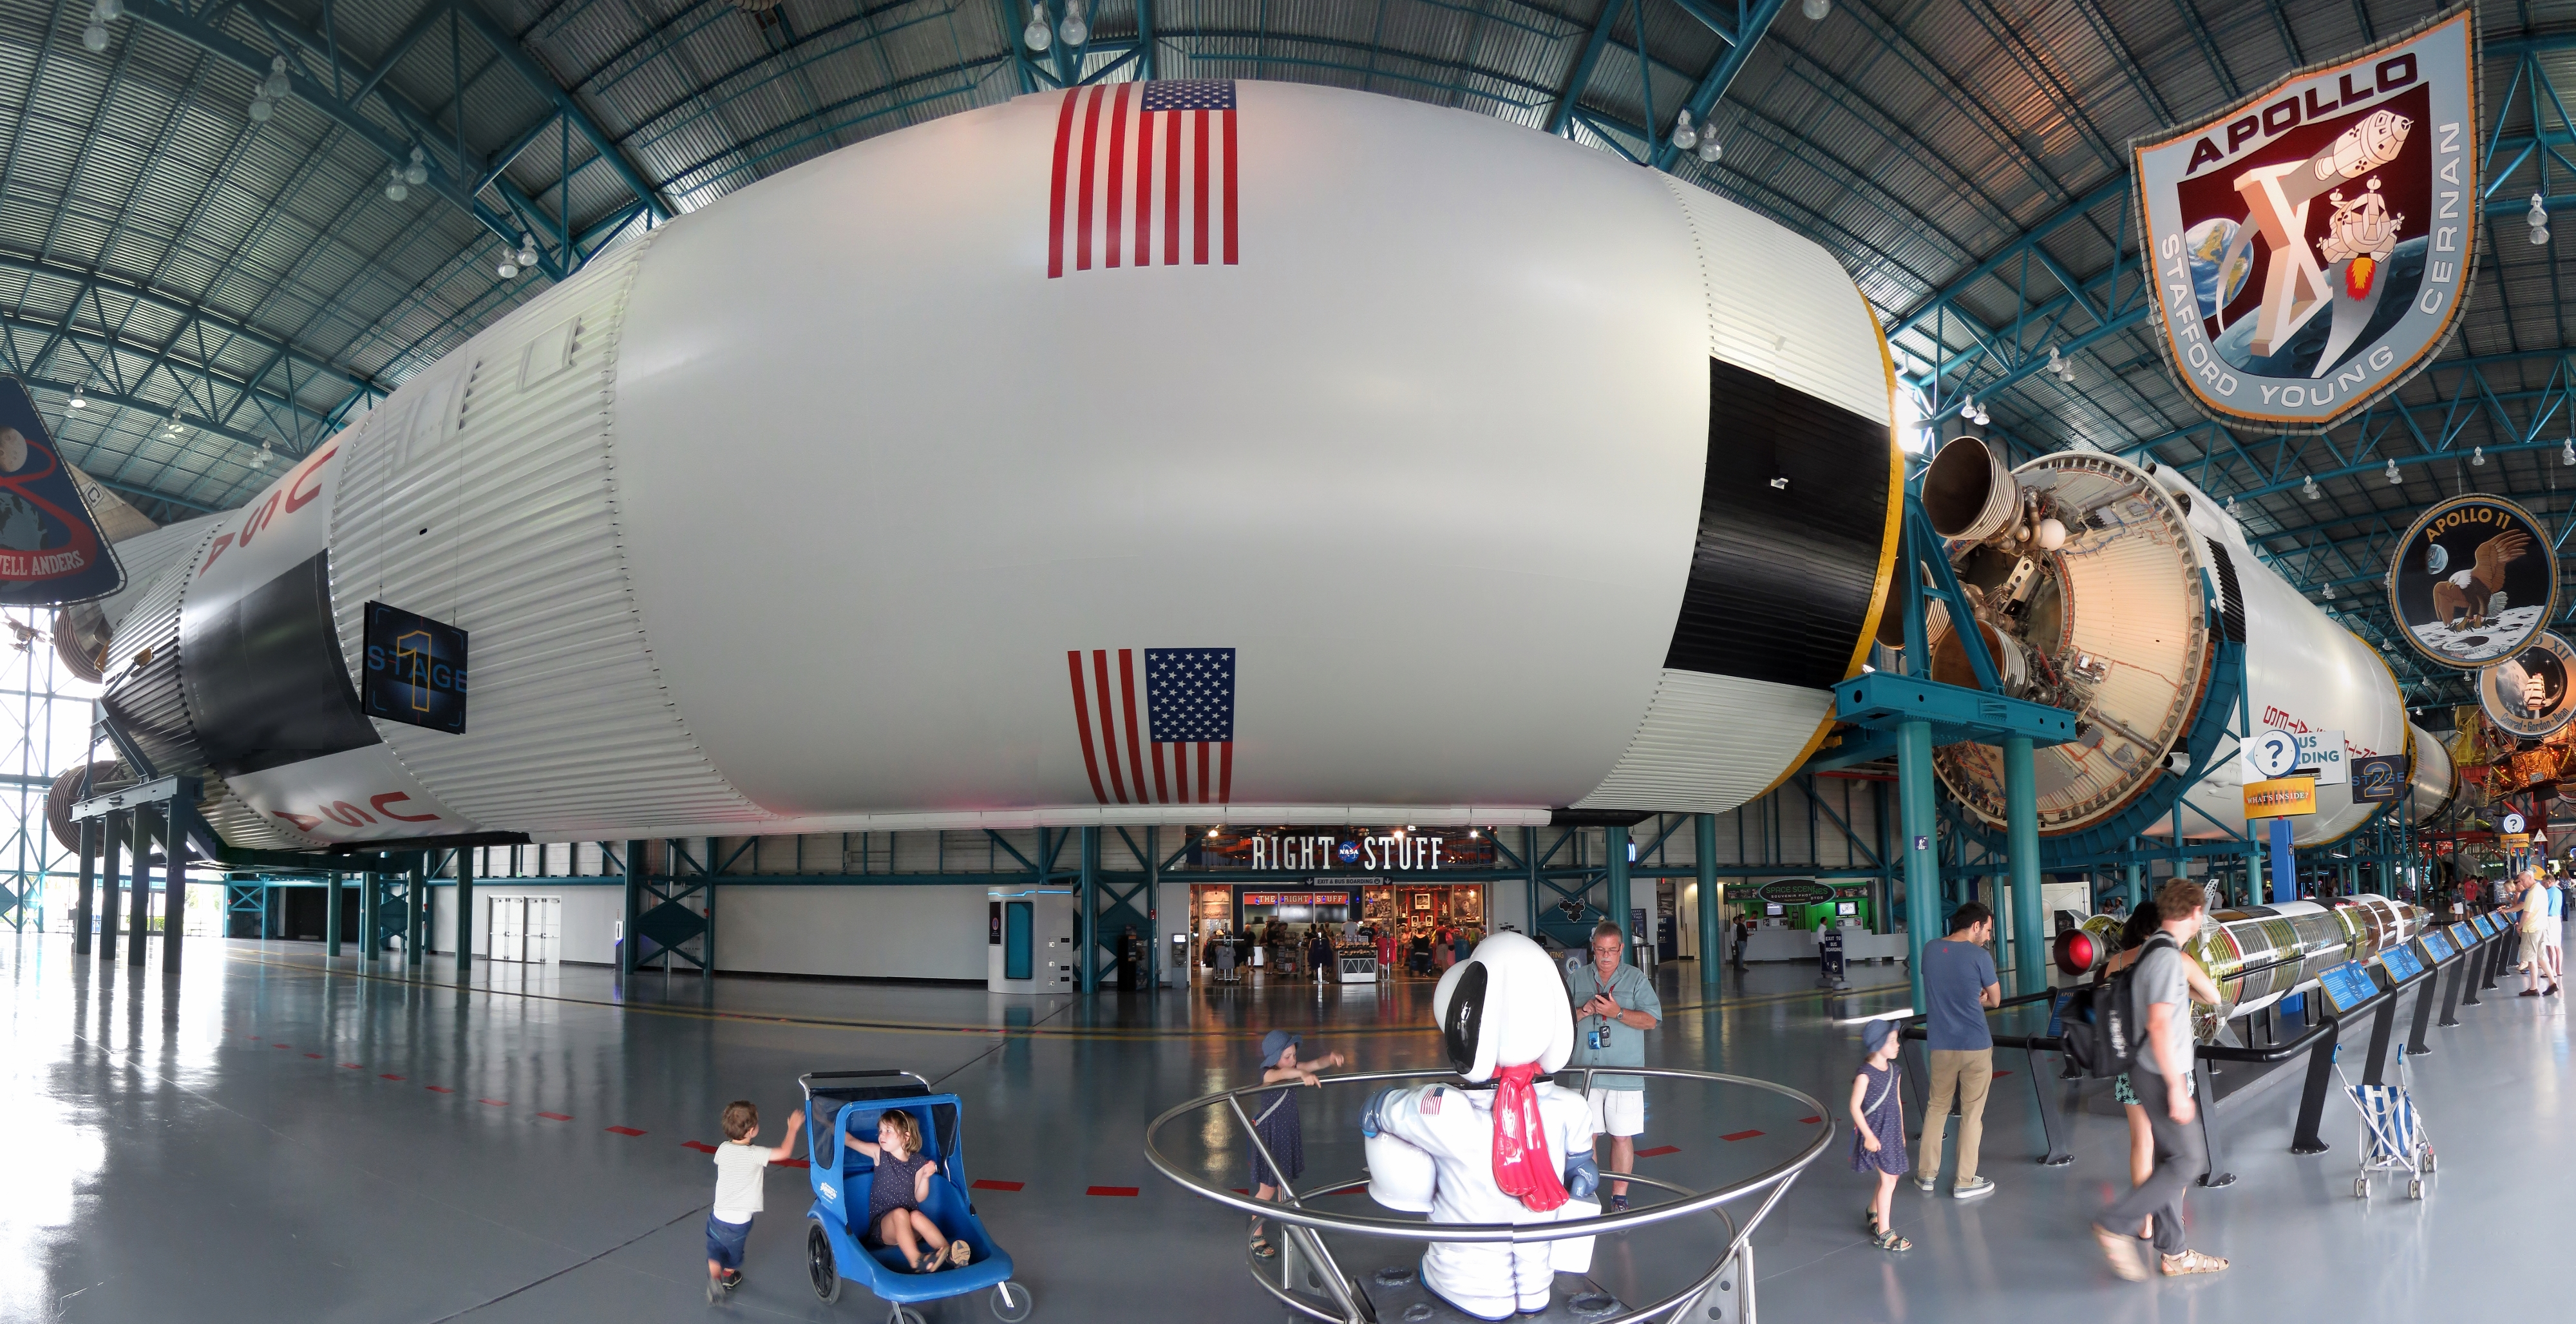 apollo 11 movie kennedy space center - photo #24